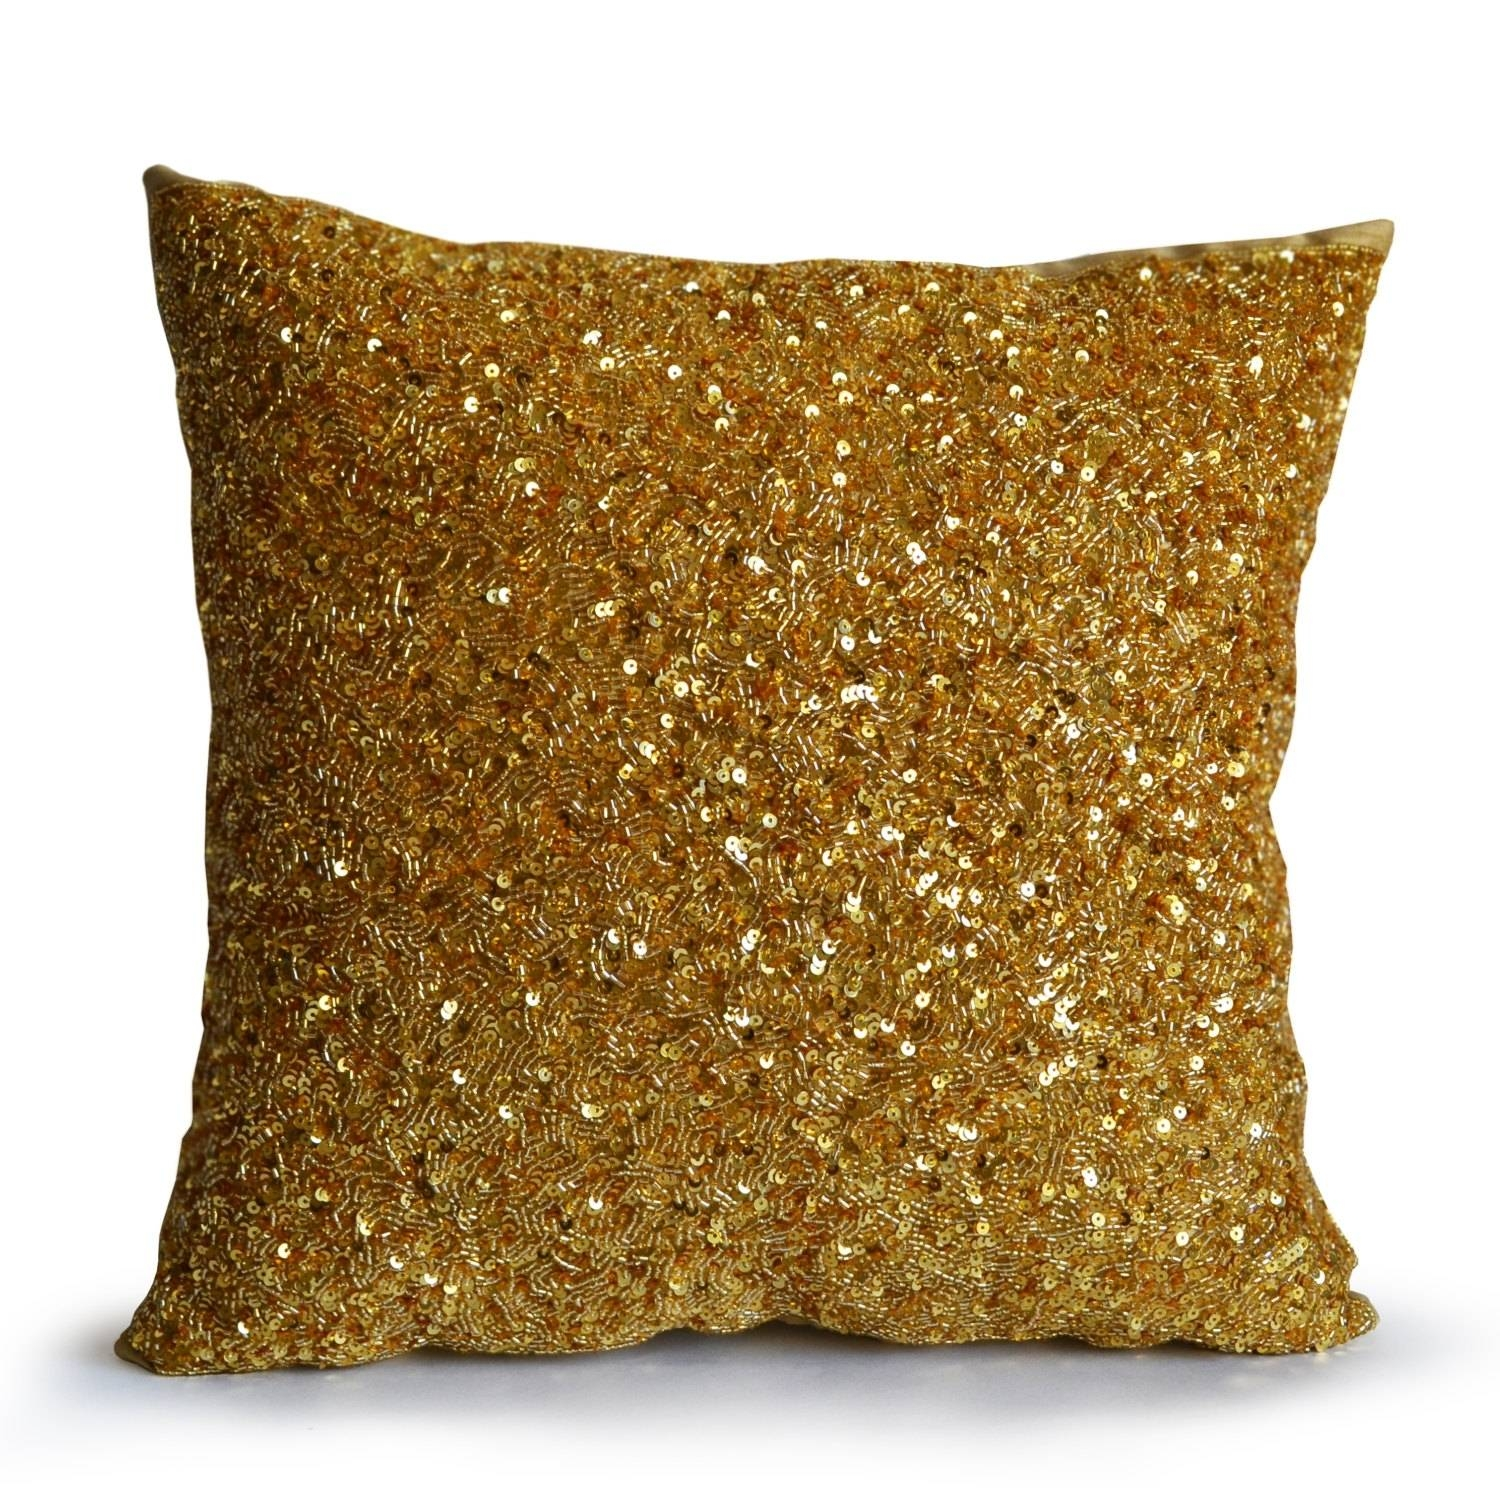 Top Gold Throw Pillows With Arrows Pillow Cover Throughout Top throughout Gold Sofa Pillows (Image 15 of 15)